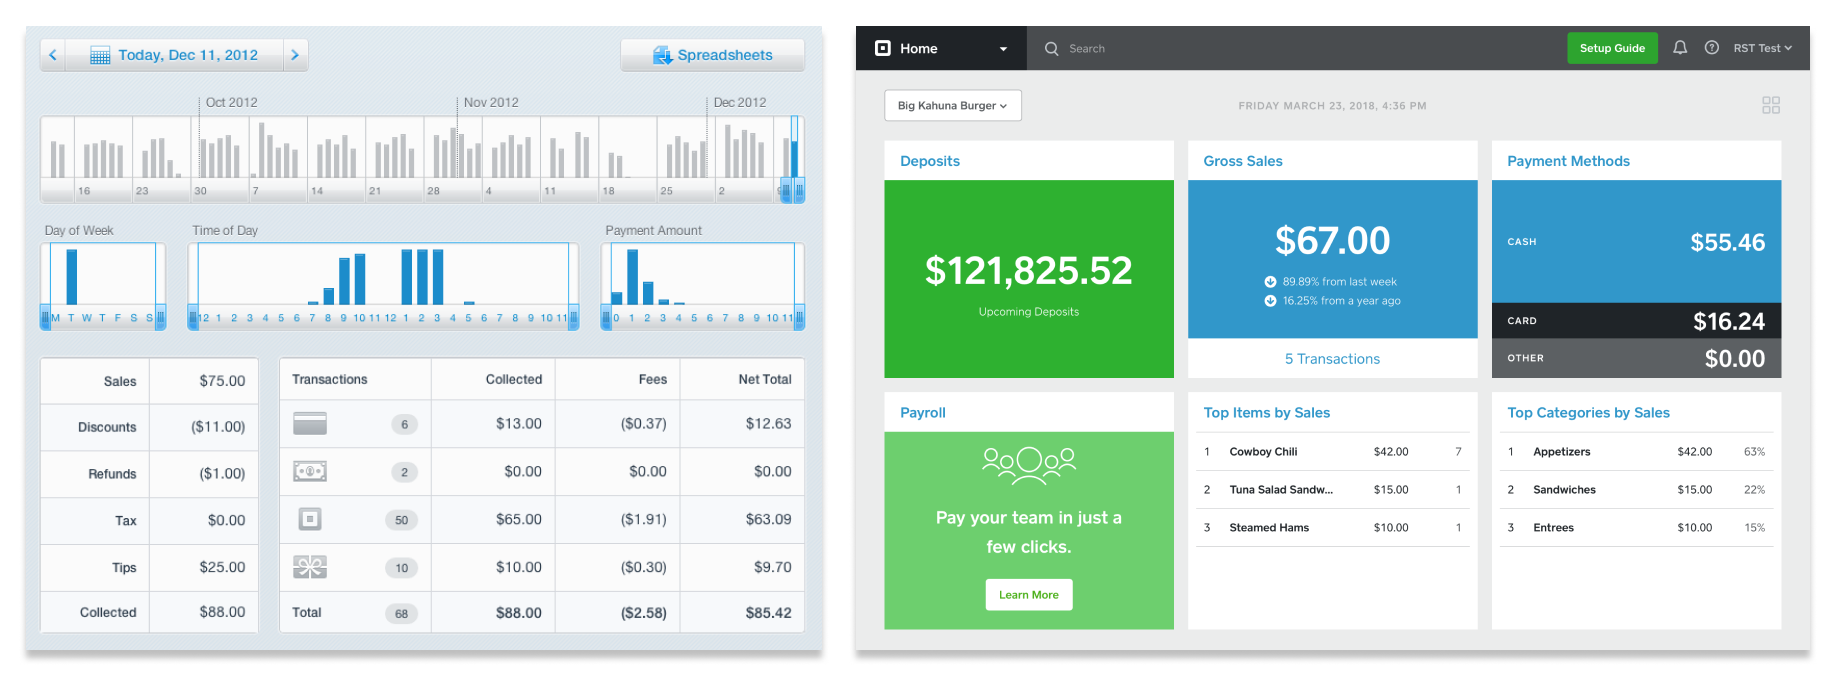 Square Dashboard circa 2012 versus Square Dashboard in the near future